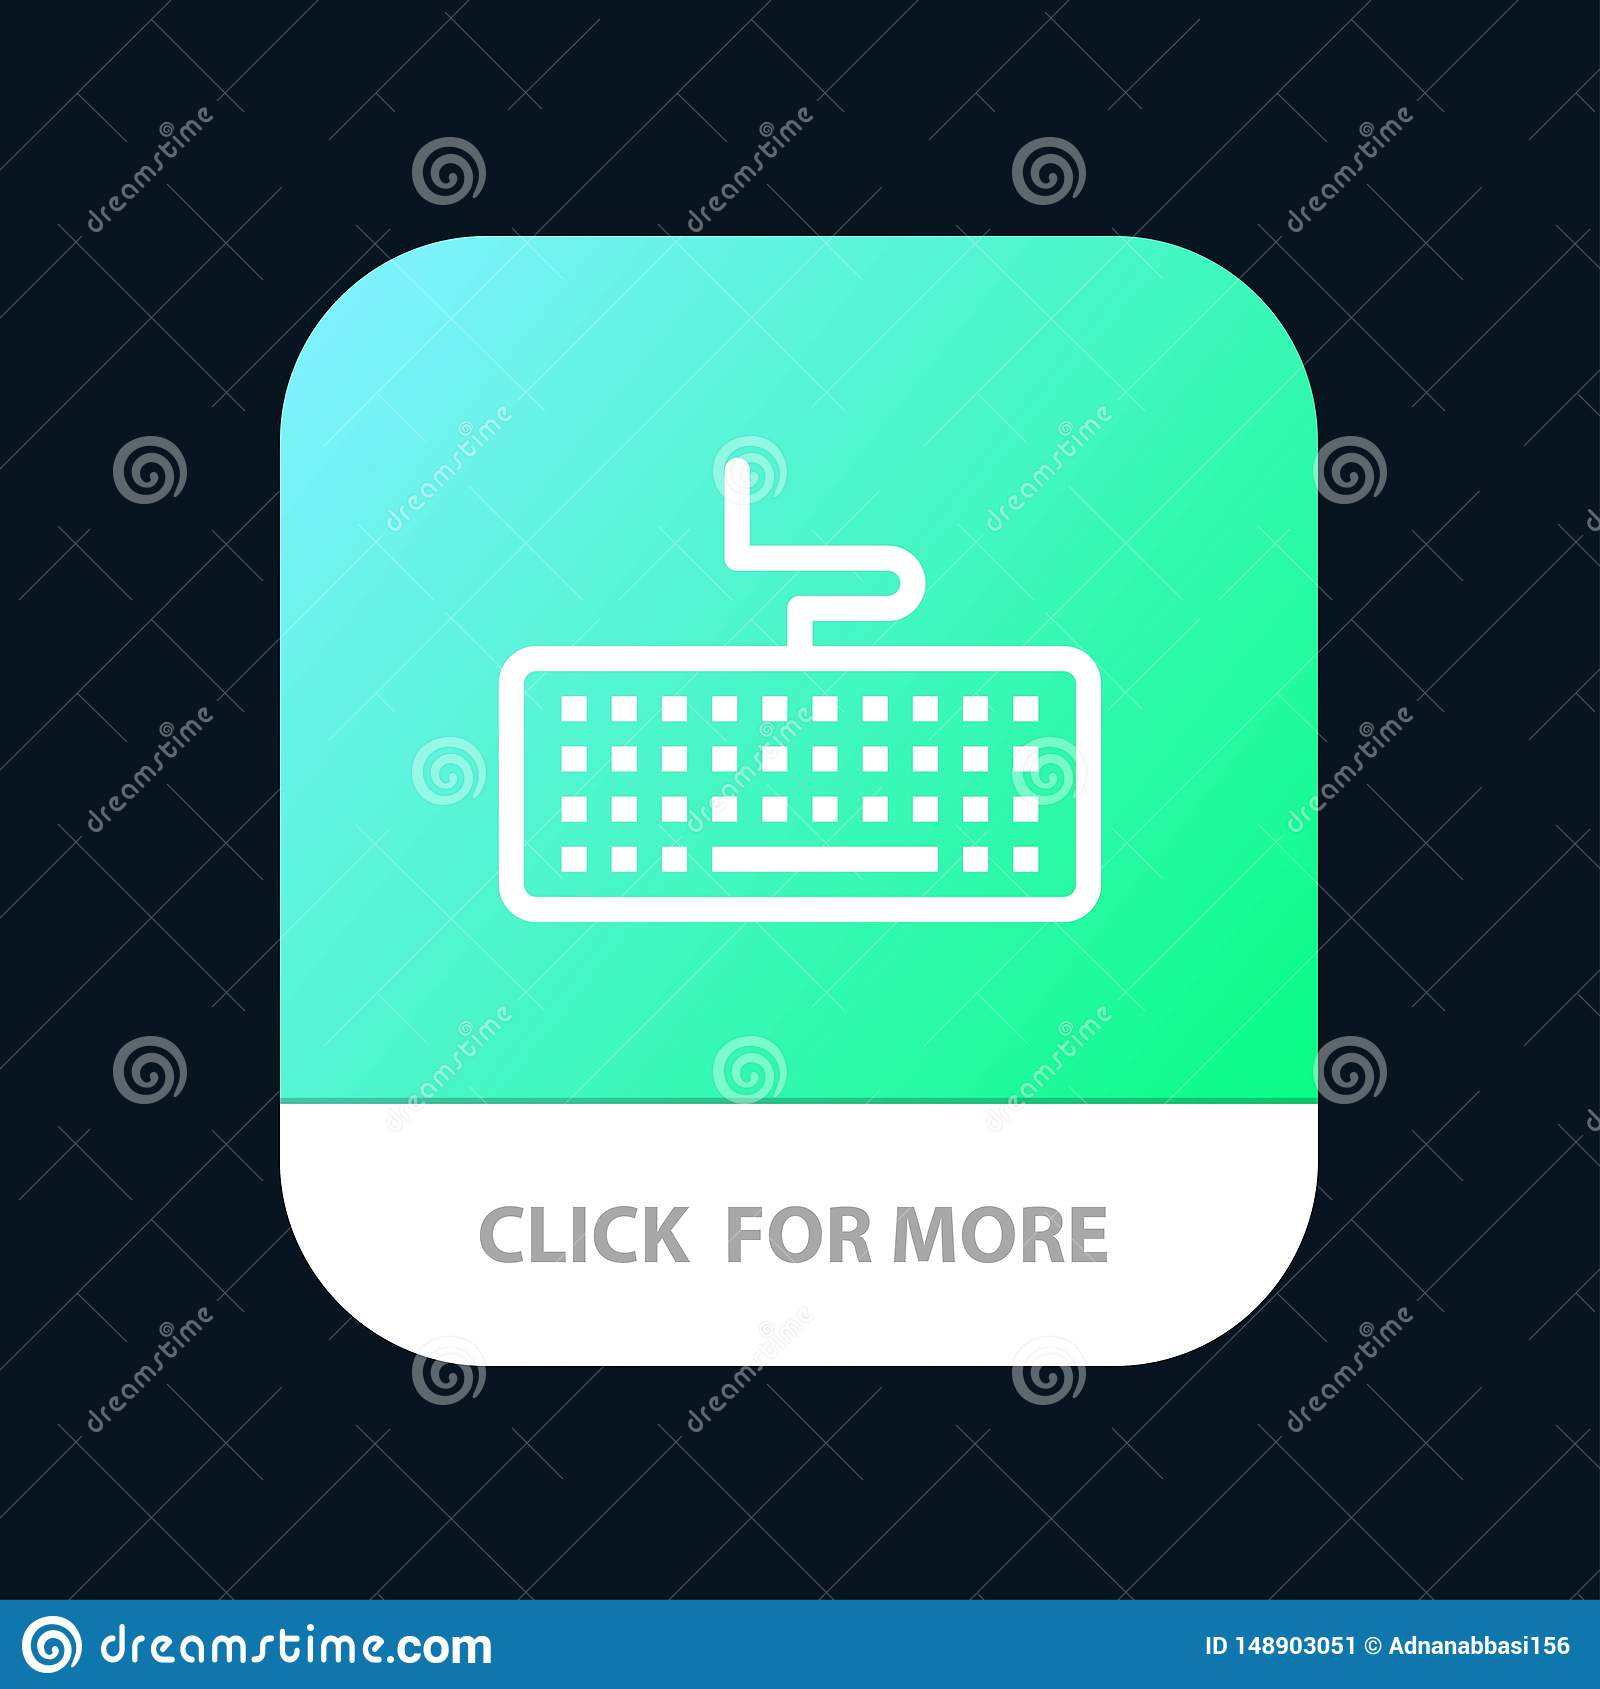 Key, Keyboard, Hardware, Education Mobile App Button. Android and IOS Line Version